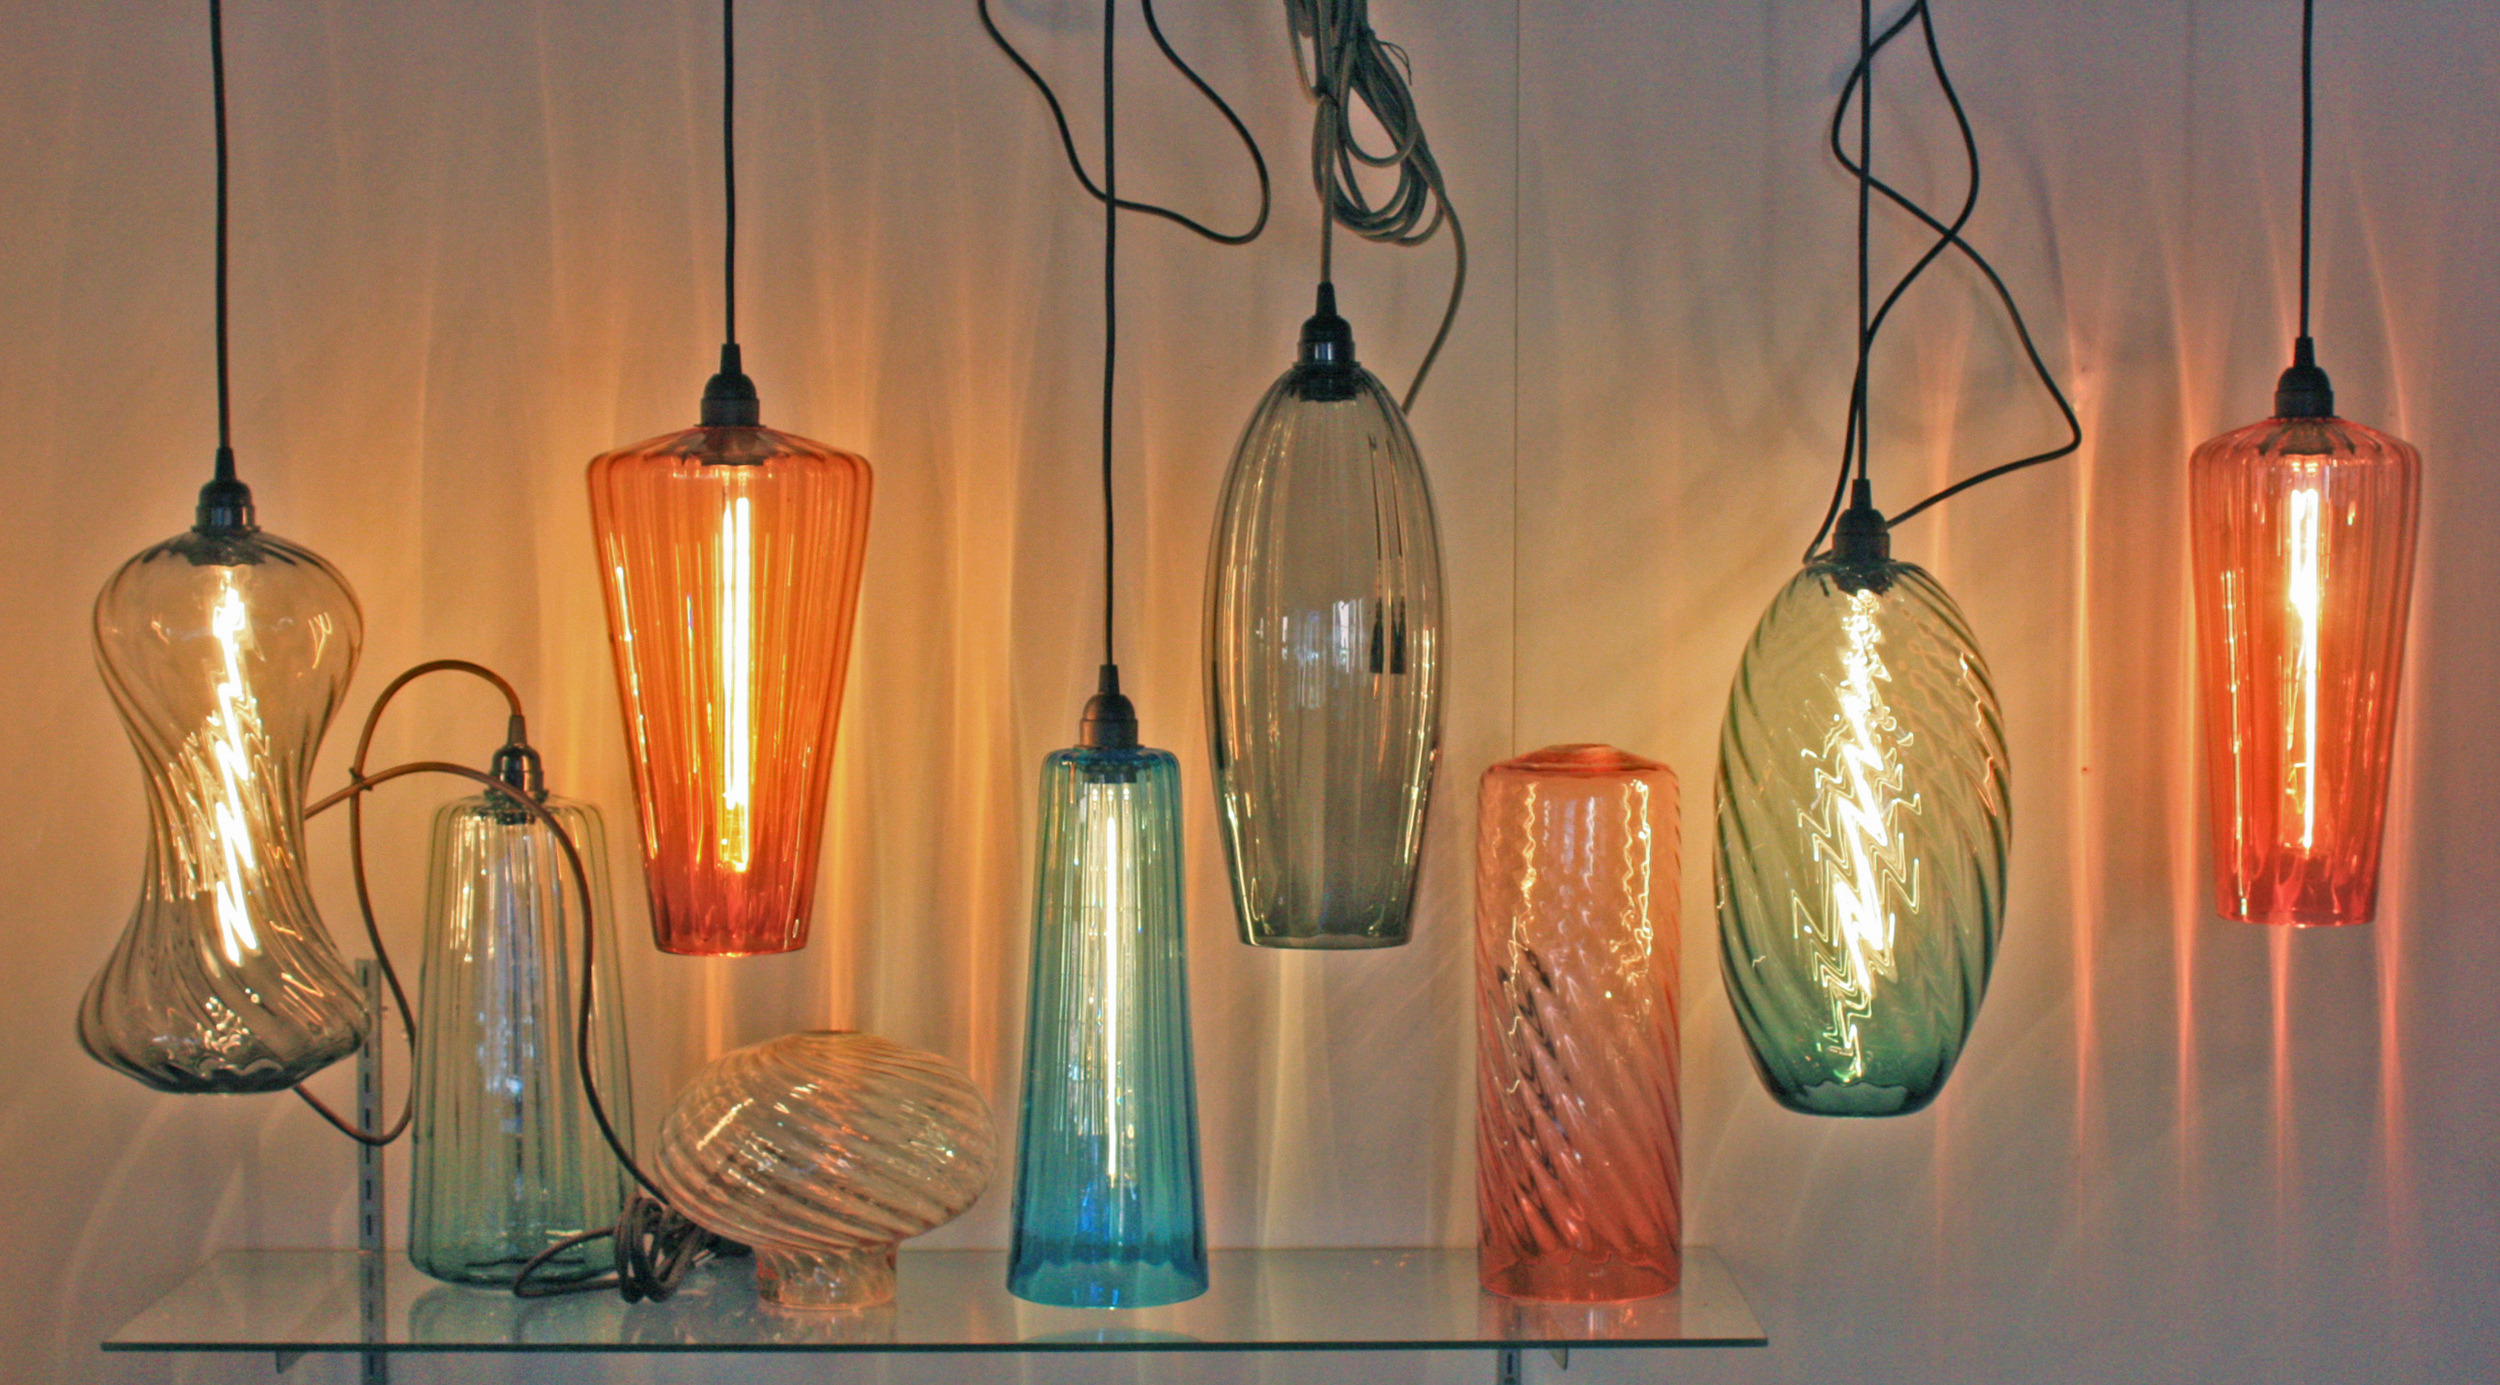 deco Pendants 2